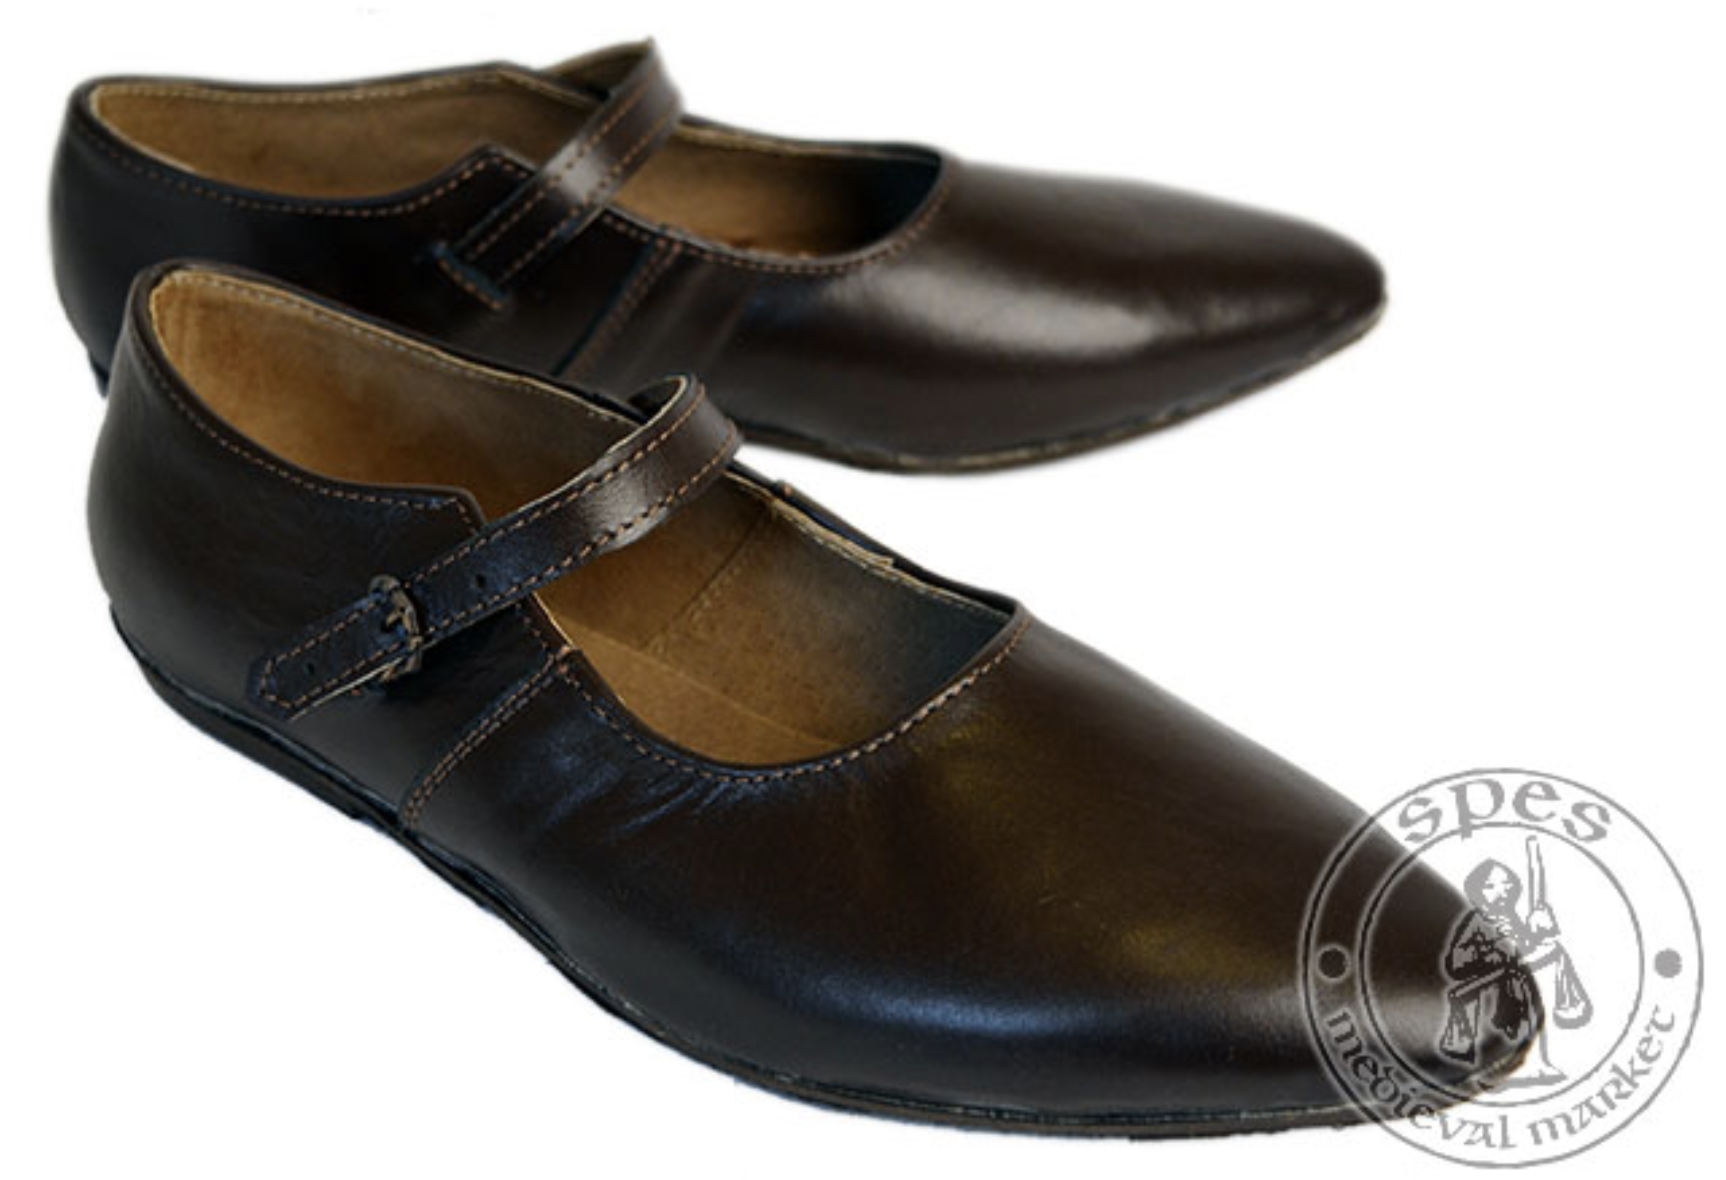 Chaussures Dame : KSE1312 - 80 €